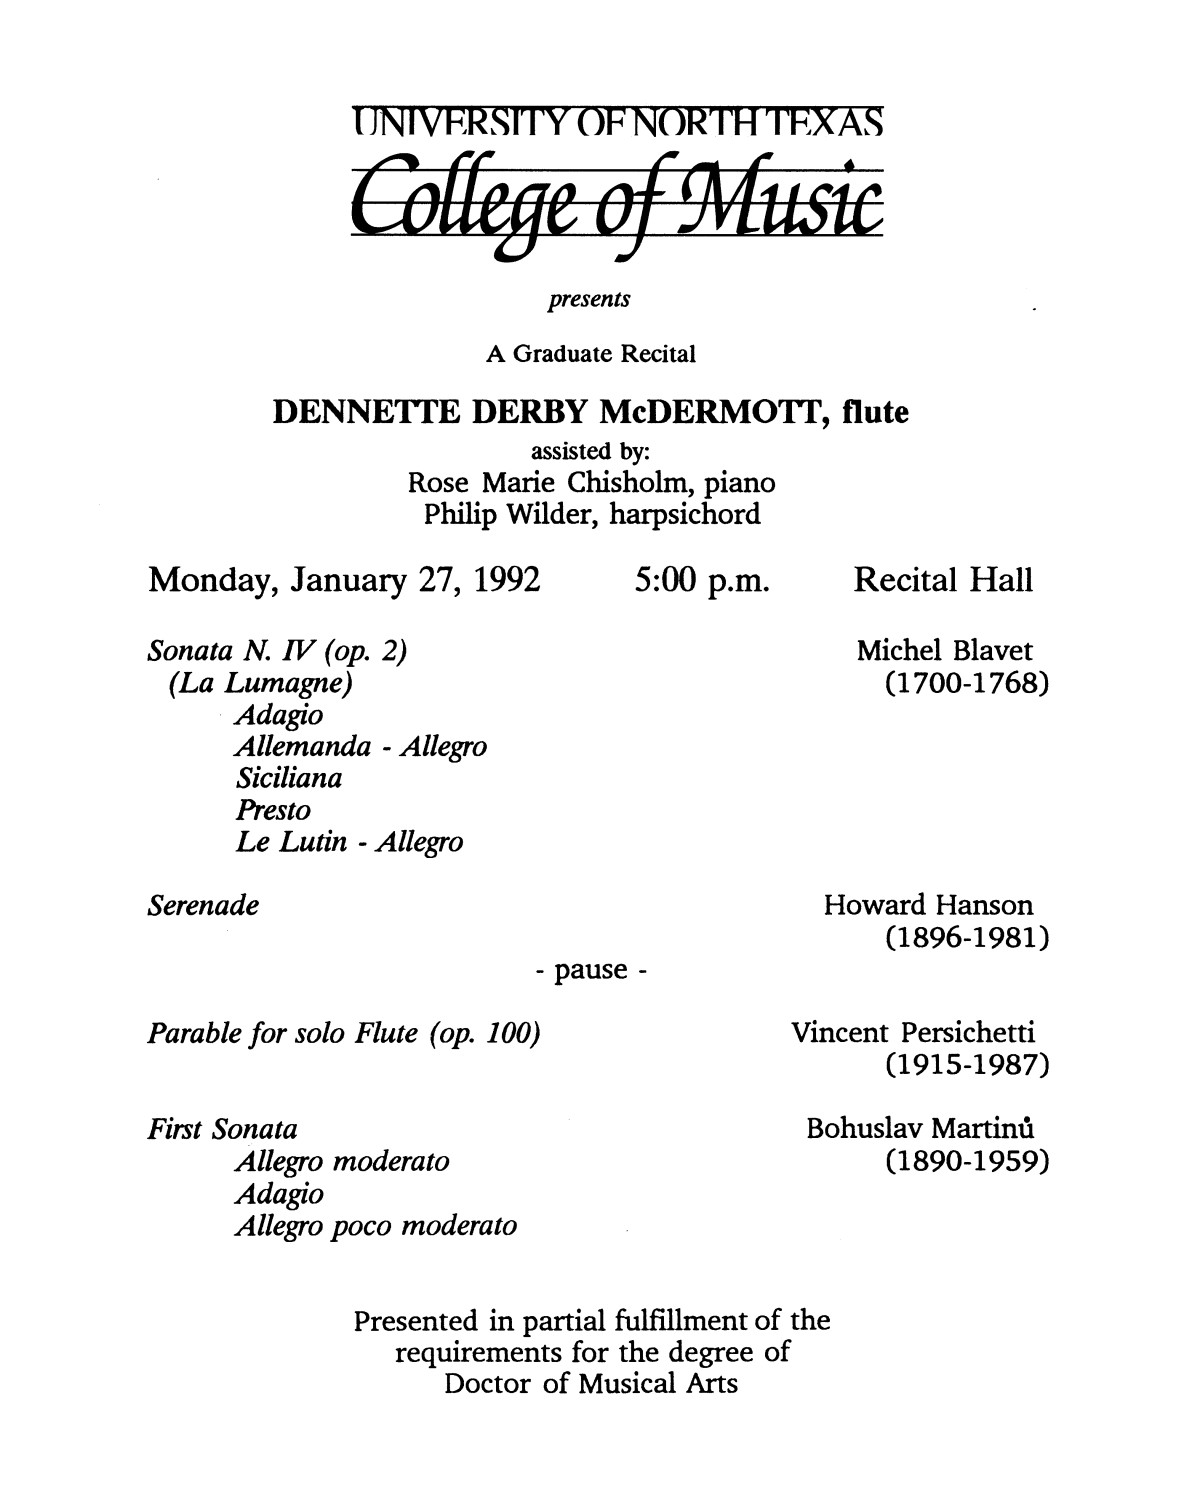 College of Music program book 1991-1992 Student Performances Vol. 2                                                                                                      [Sequence #]: 95 of 310